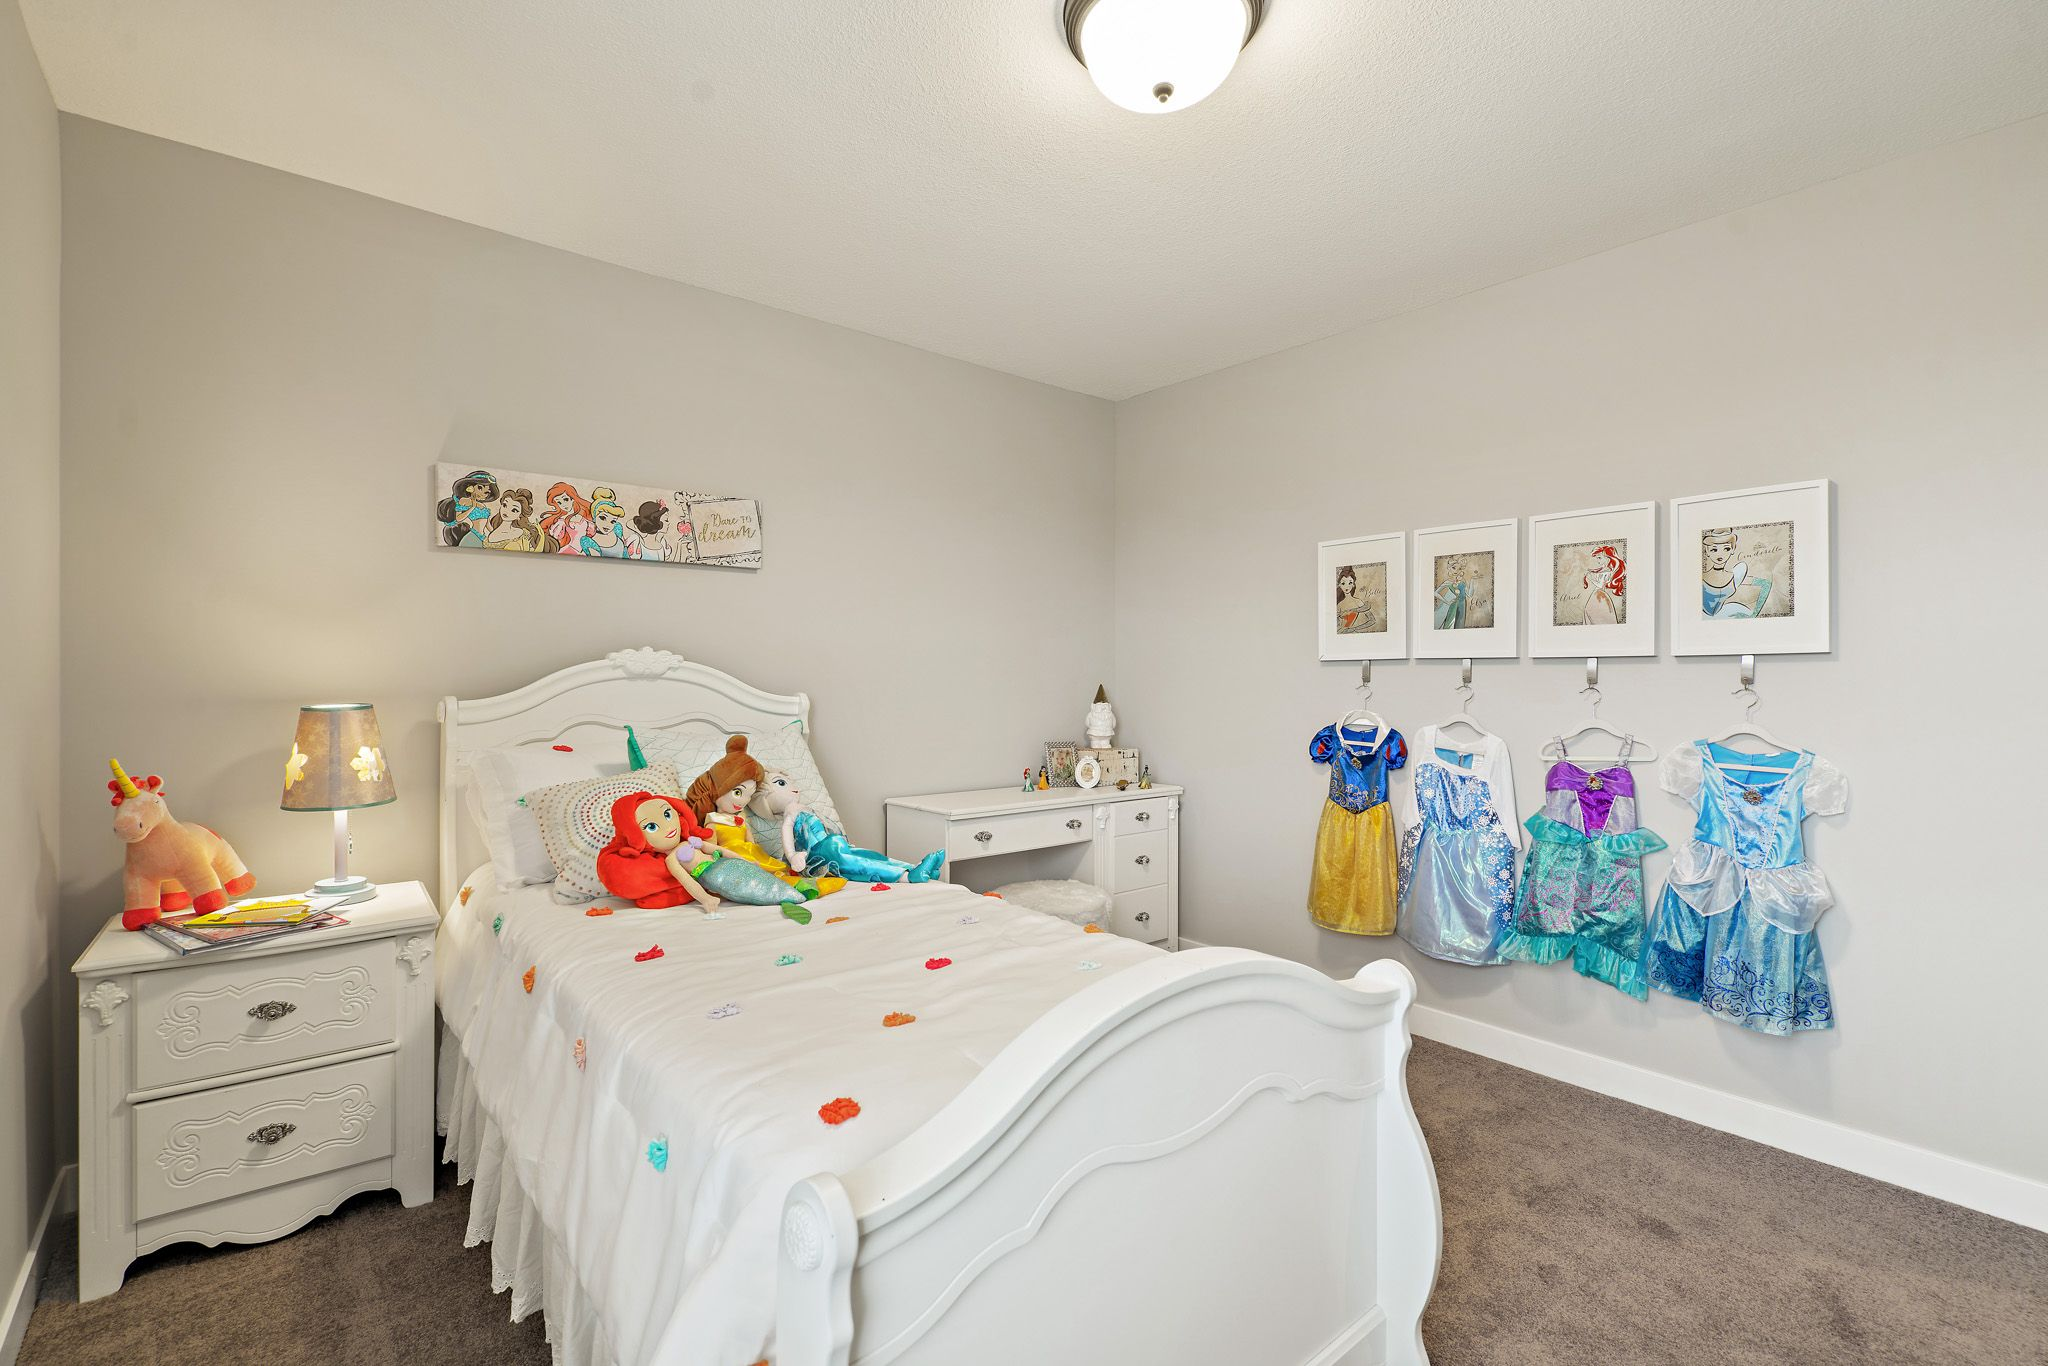 Bedroom featured in the honeydew - contemporary By clover & hive in Kansas City, MO